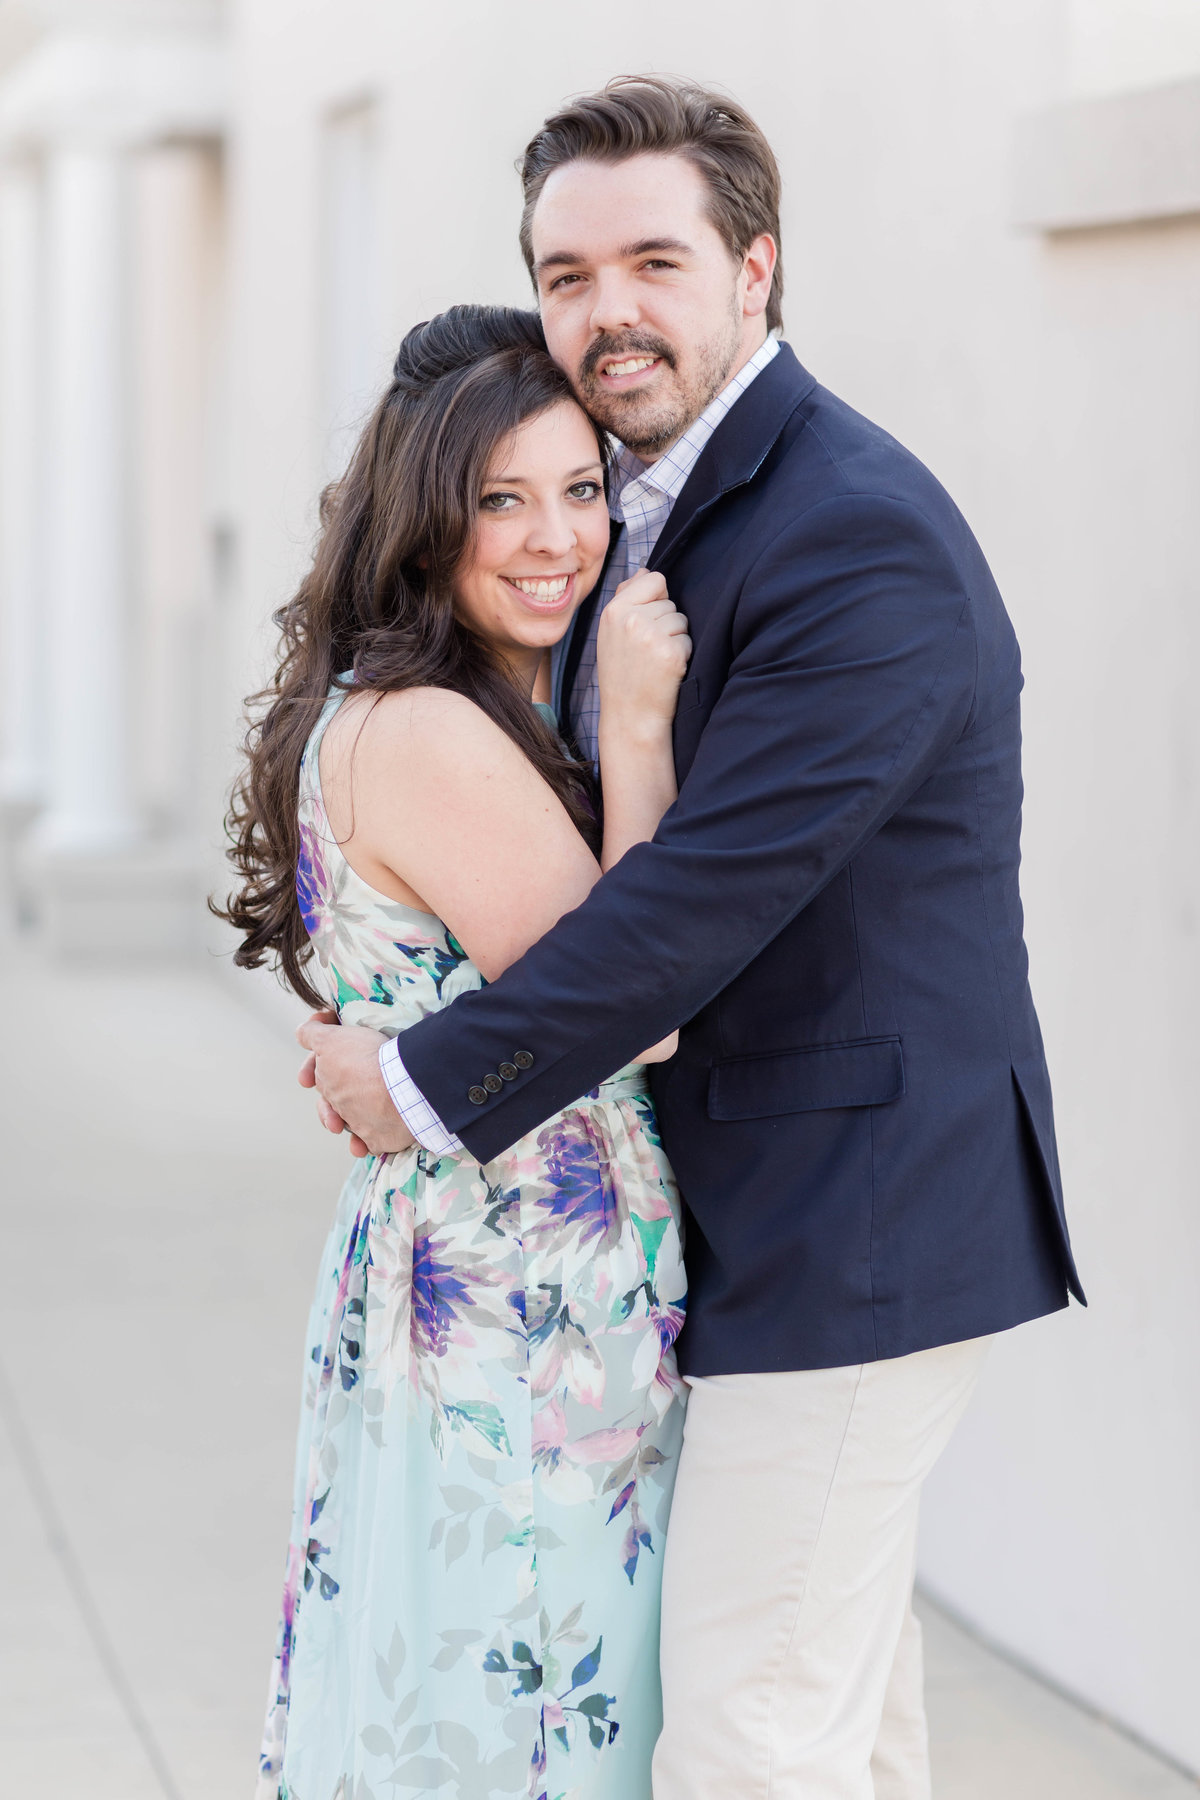 Leslie Page Photography - Central Florida Photographer - Tampa, Orlando, Gainesville, St. Augustine Wedding and Portrait Photographer - 27